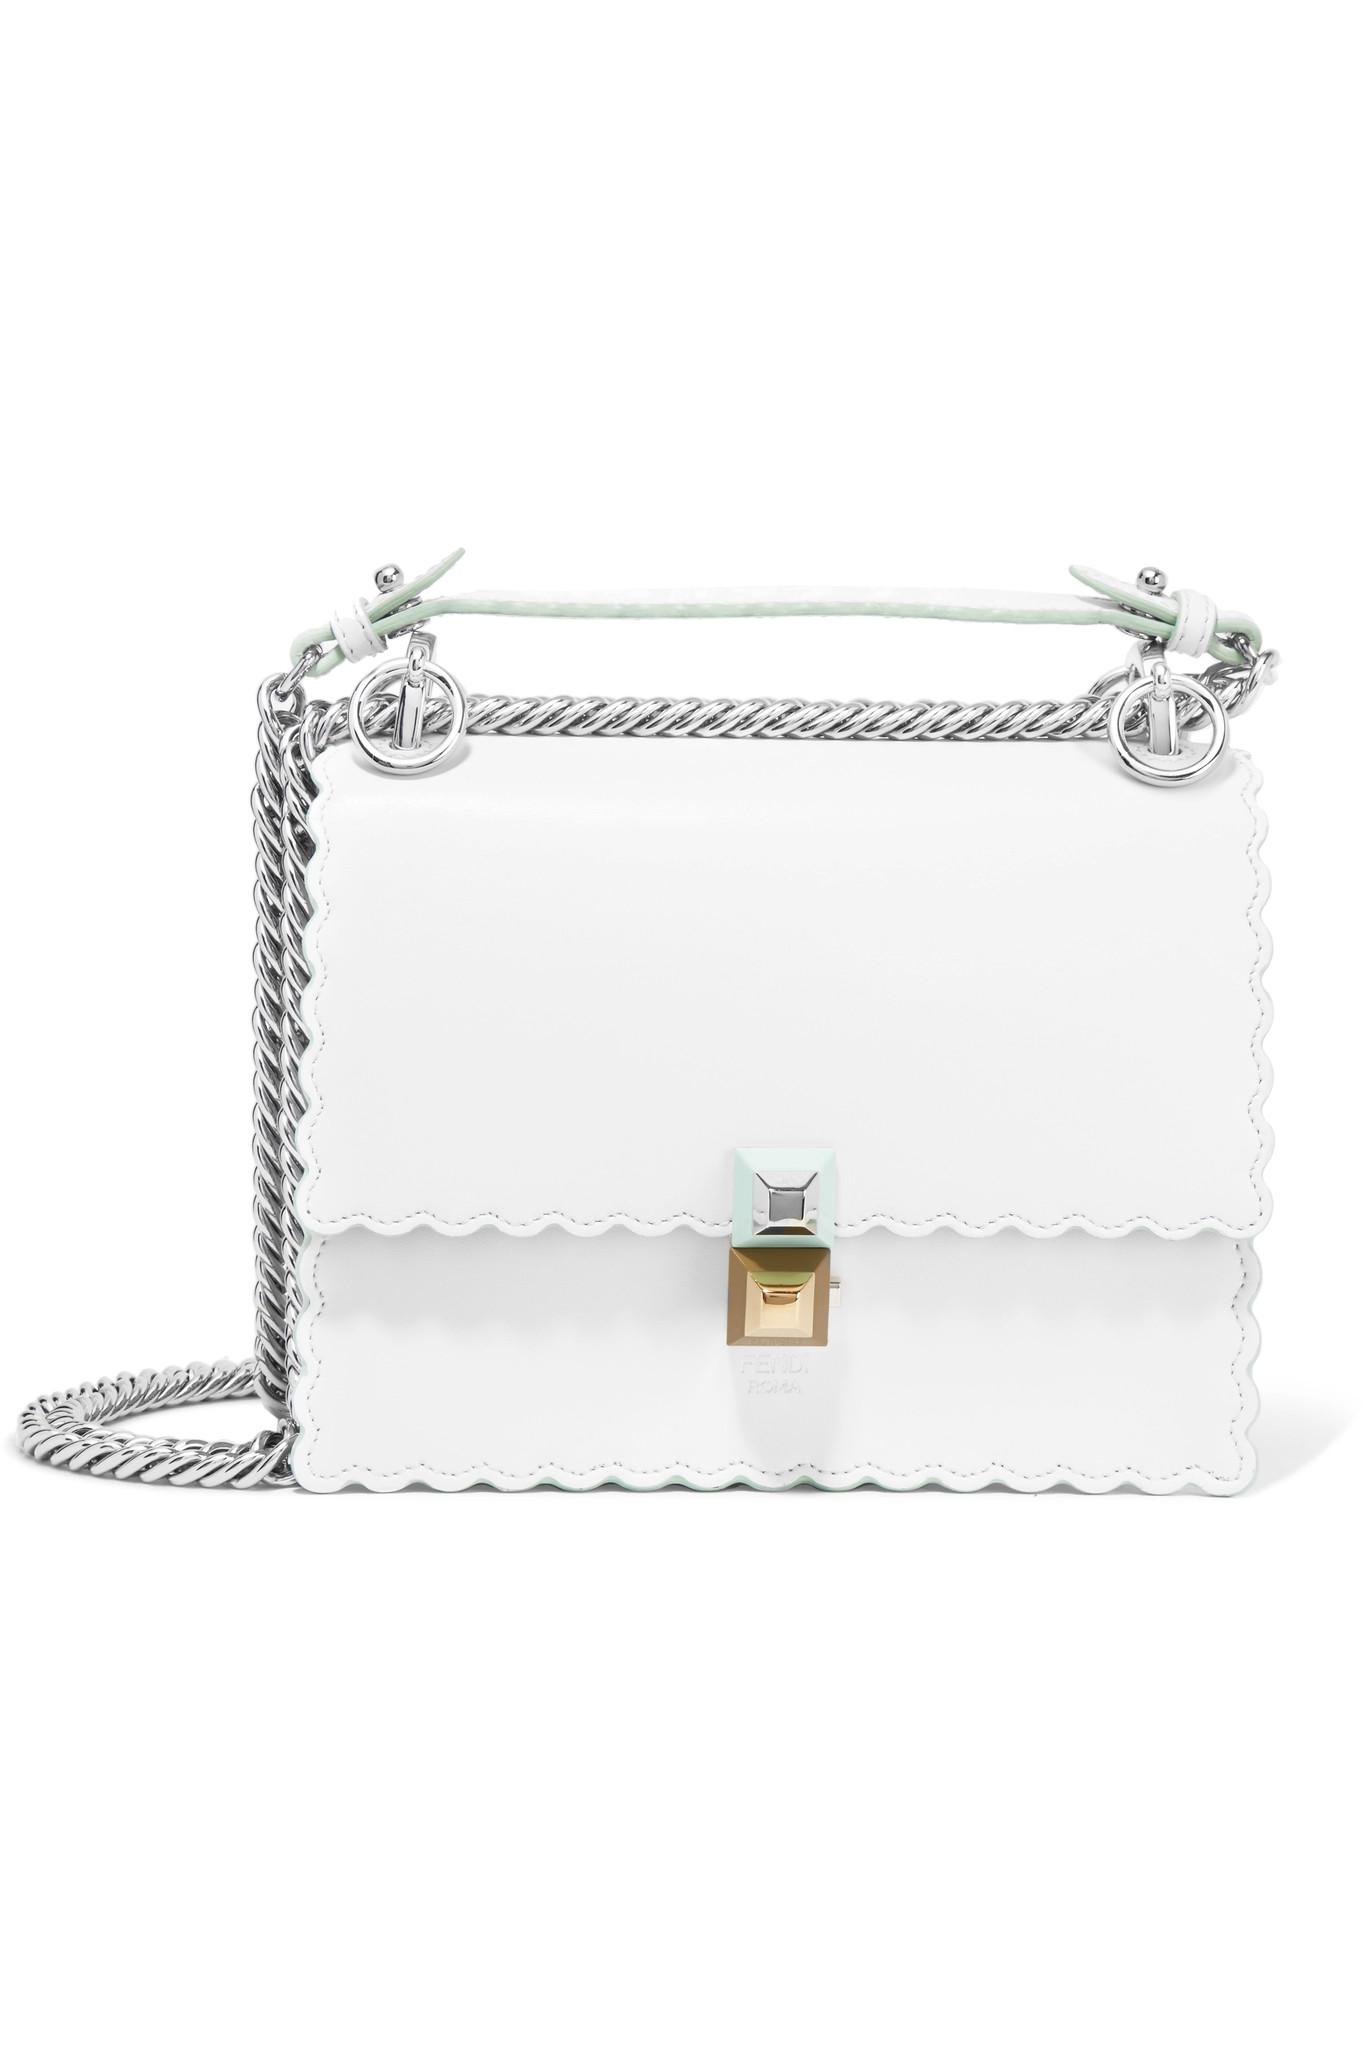 26151804 Fendi White Kan I Mini Leather Shoulder Bag